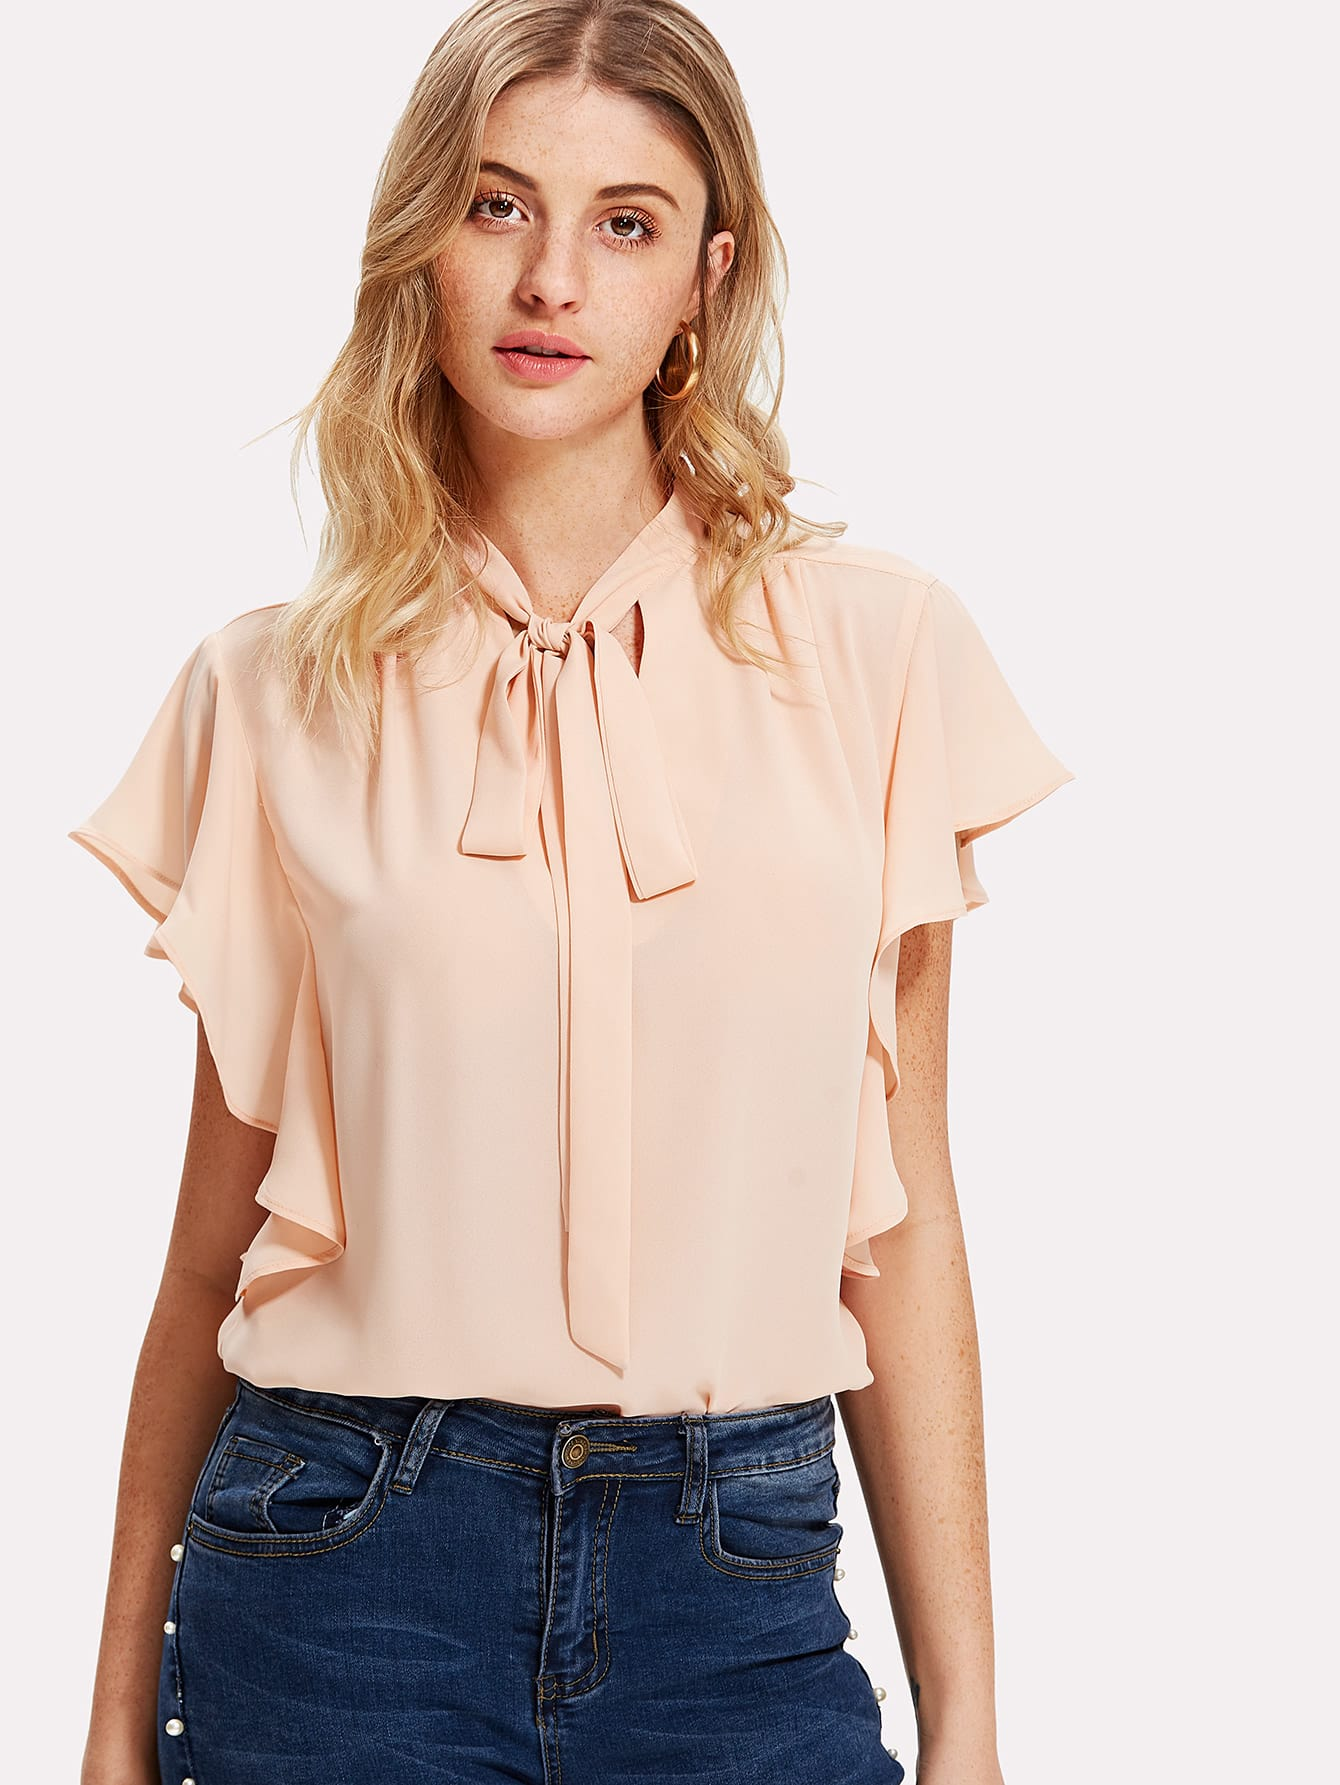 Tie Neck Ruffle Trim Top exaggerate bow tie neck ruffle trim top